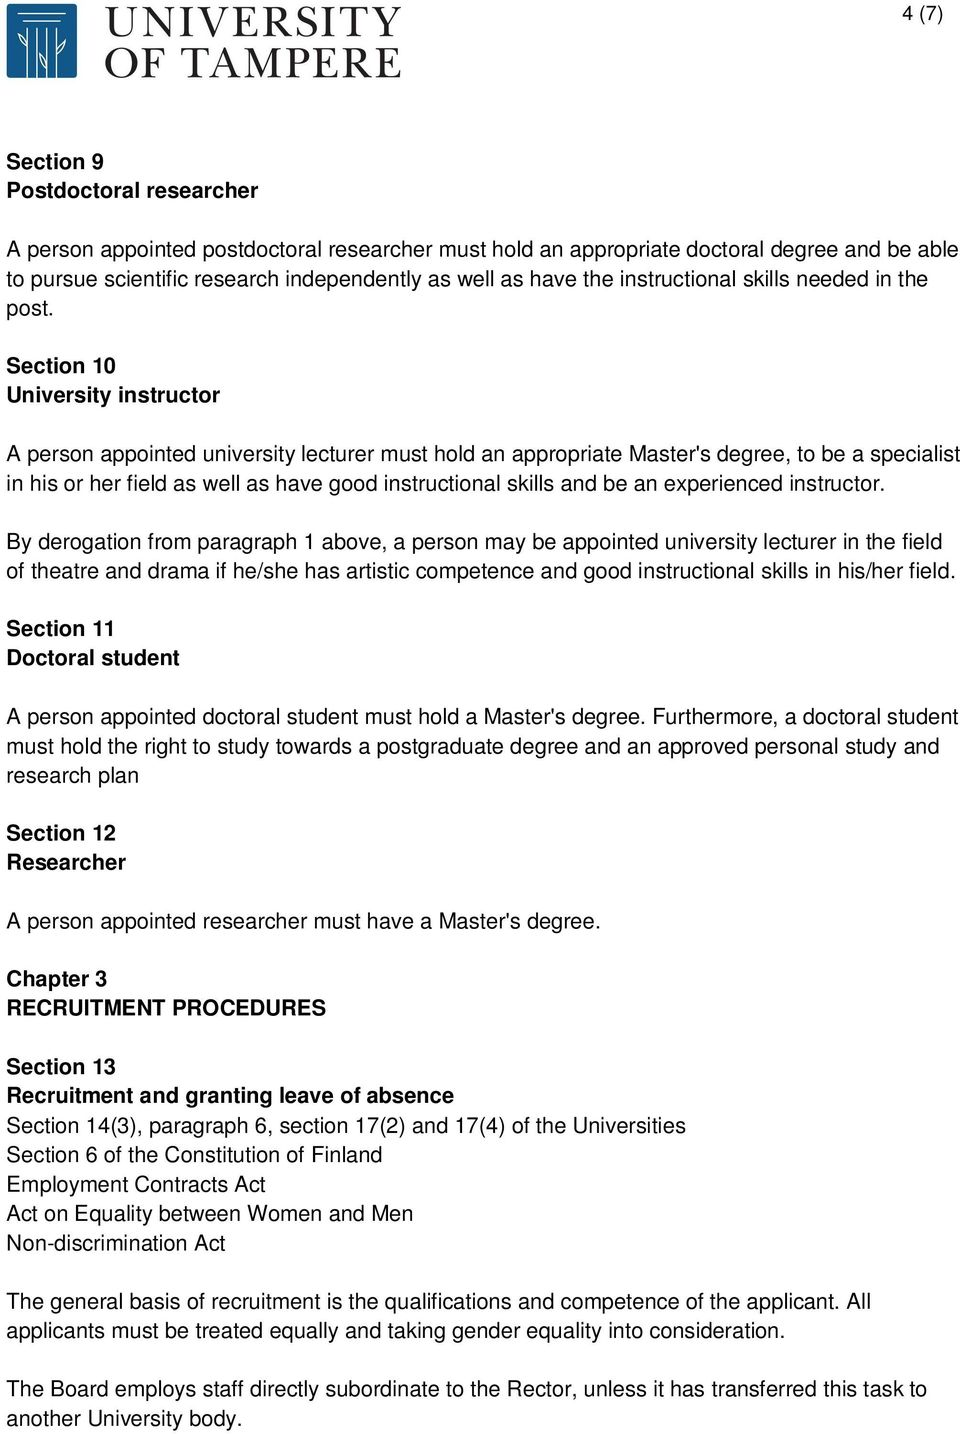 Section 10 University instructor A person appointed university lecturer must hold an appropriate Master's degree, to be a specialist in his or her field as well as have good instructional skills and